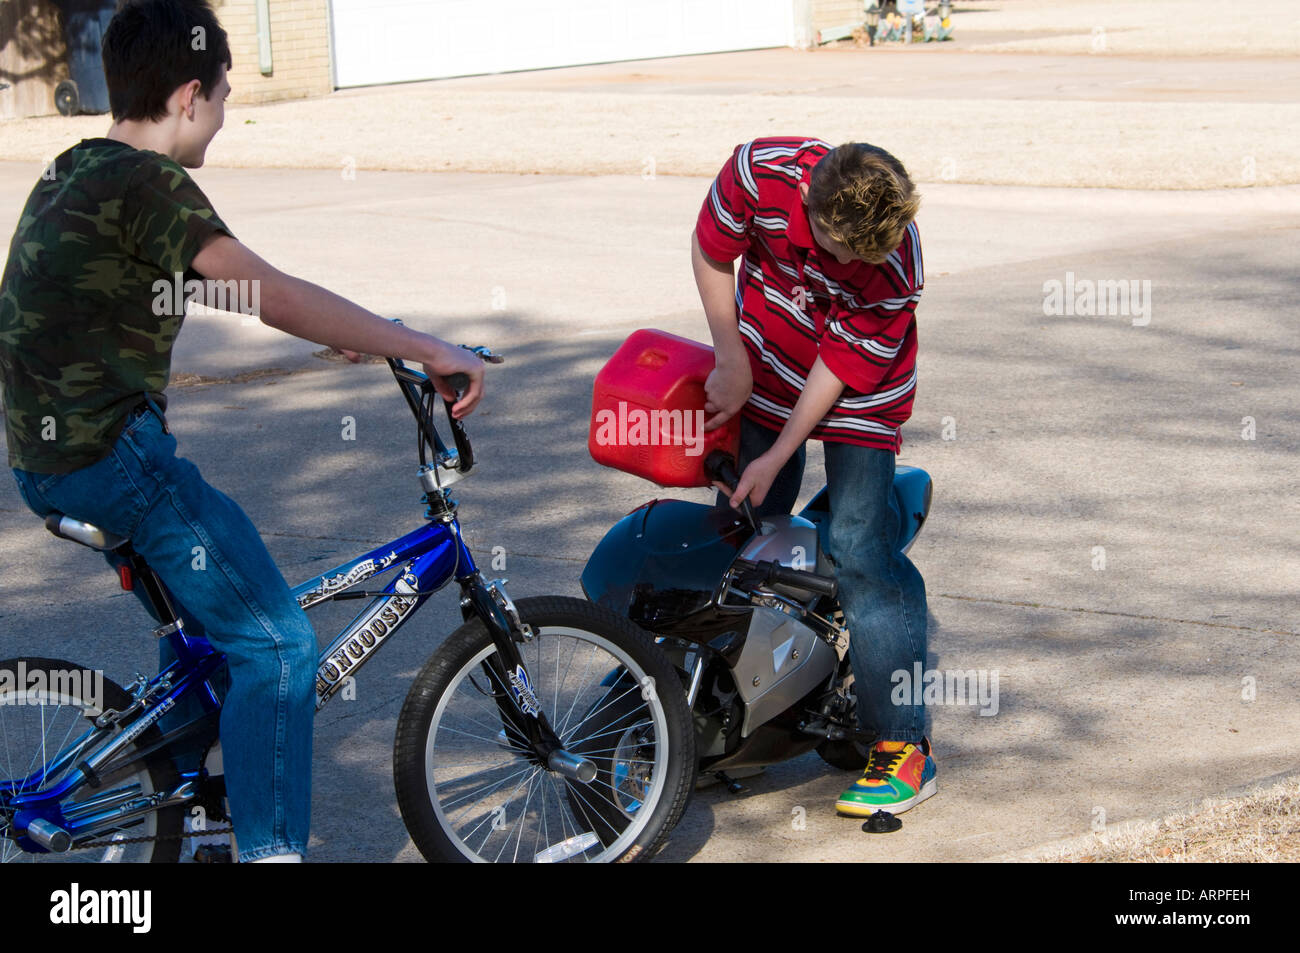 A teenage boy sits on his bicycle and looks on as his friend refruels his motorized pocket bike. - Stock Image